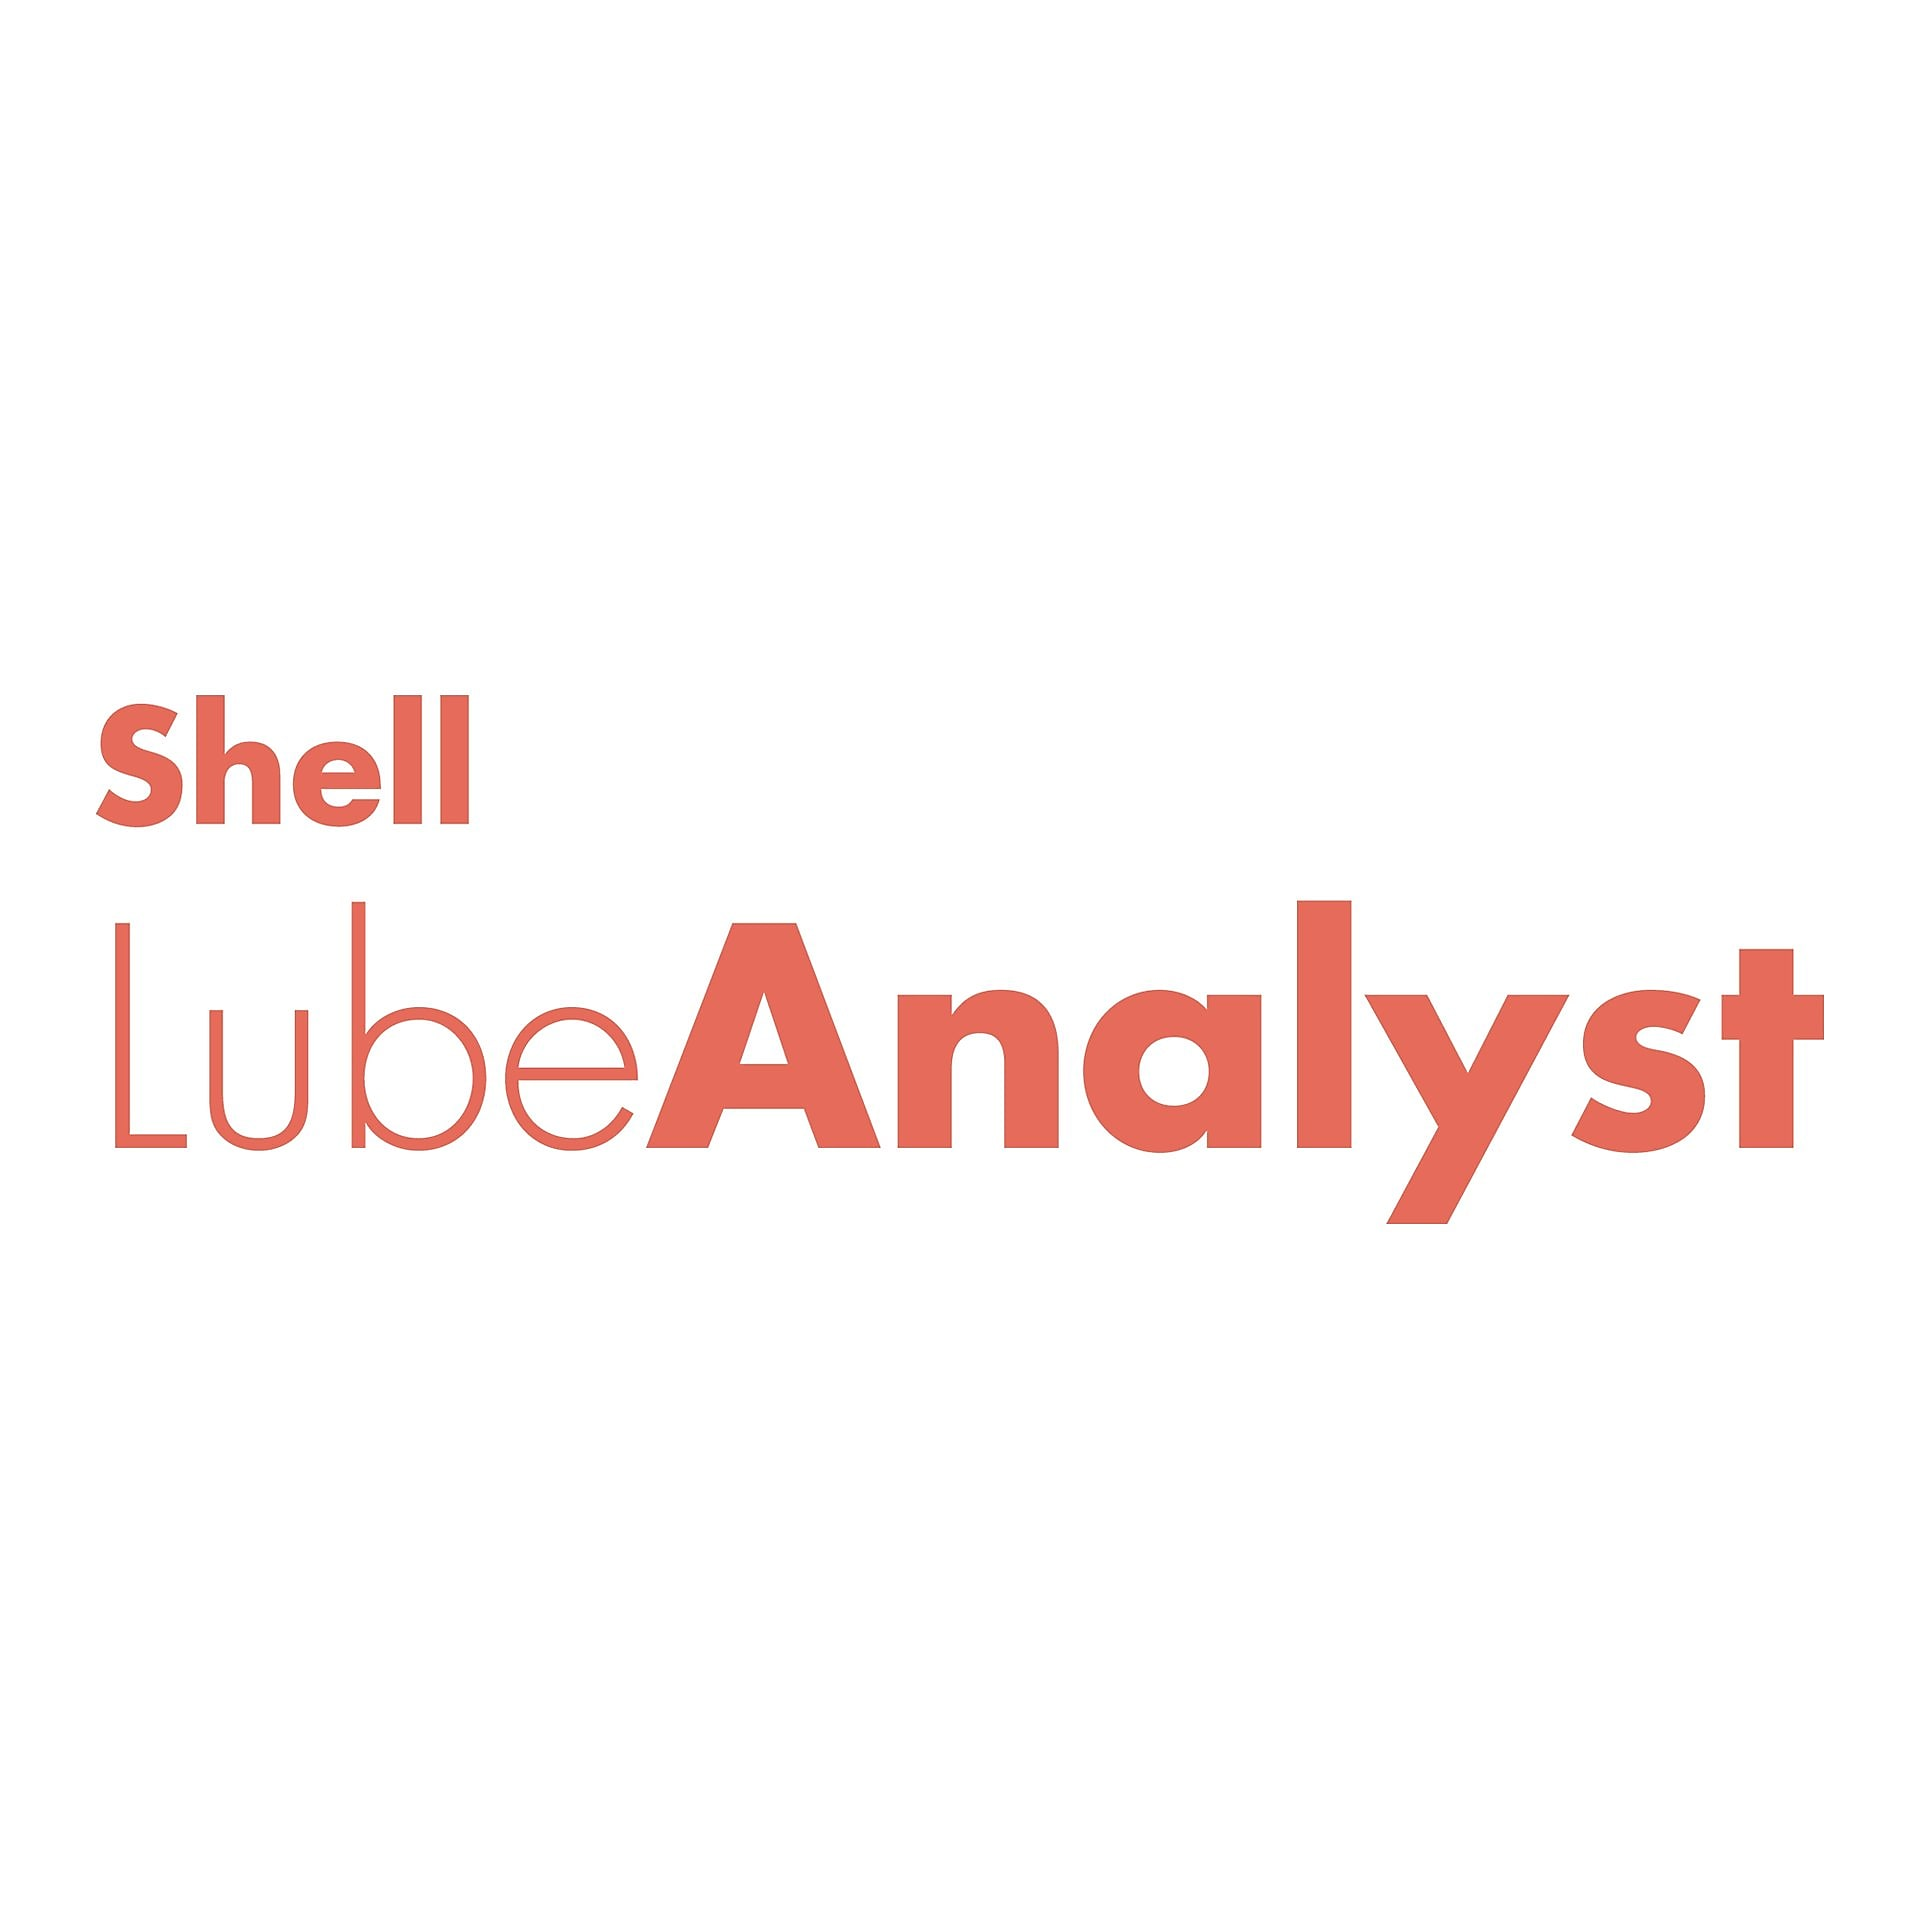 Shell LubeAnalyst - a health check for your lubricants & equipment.